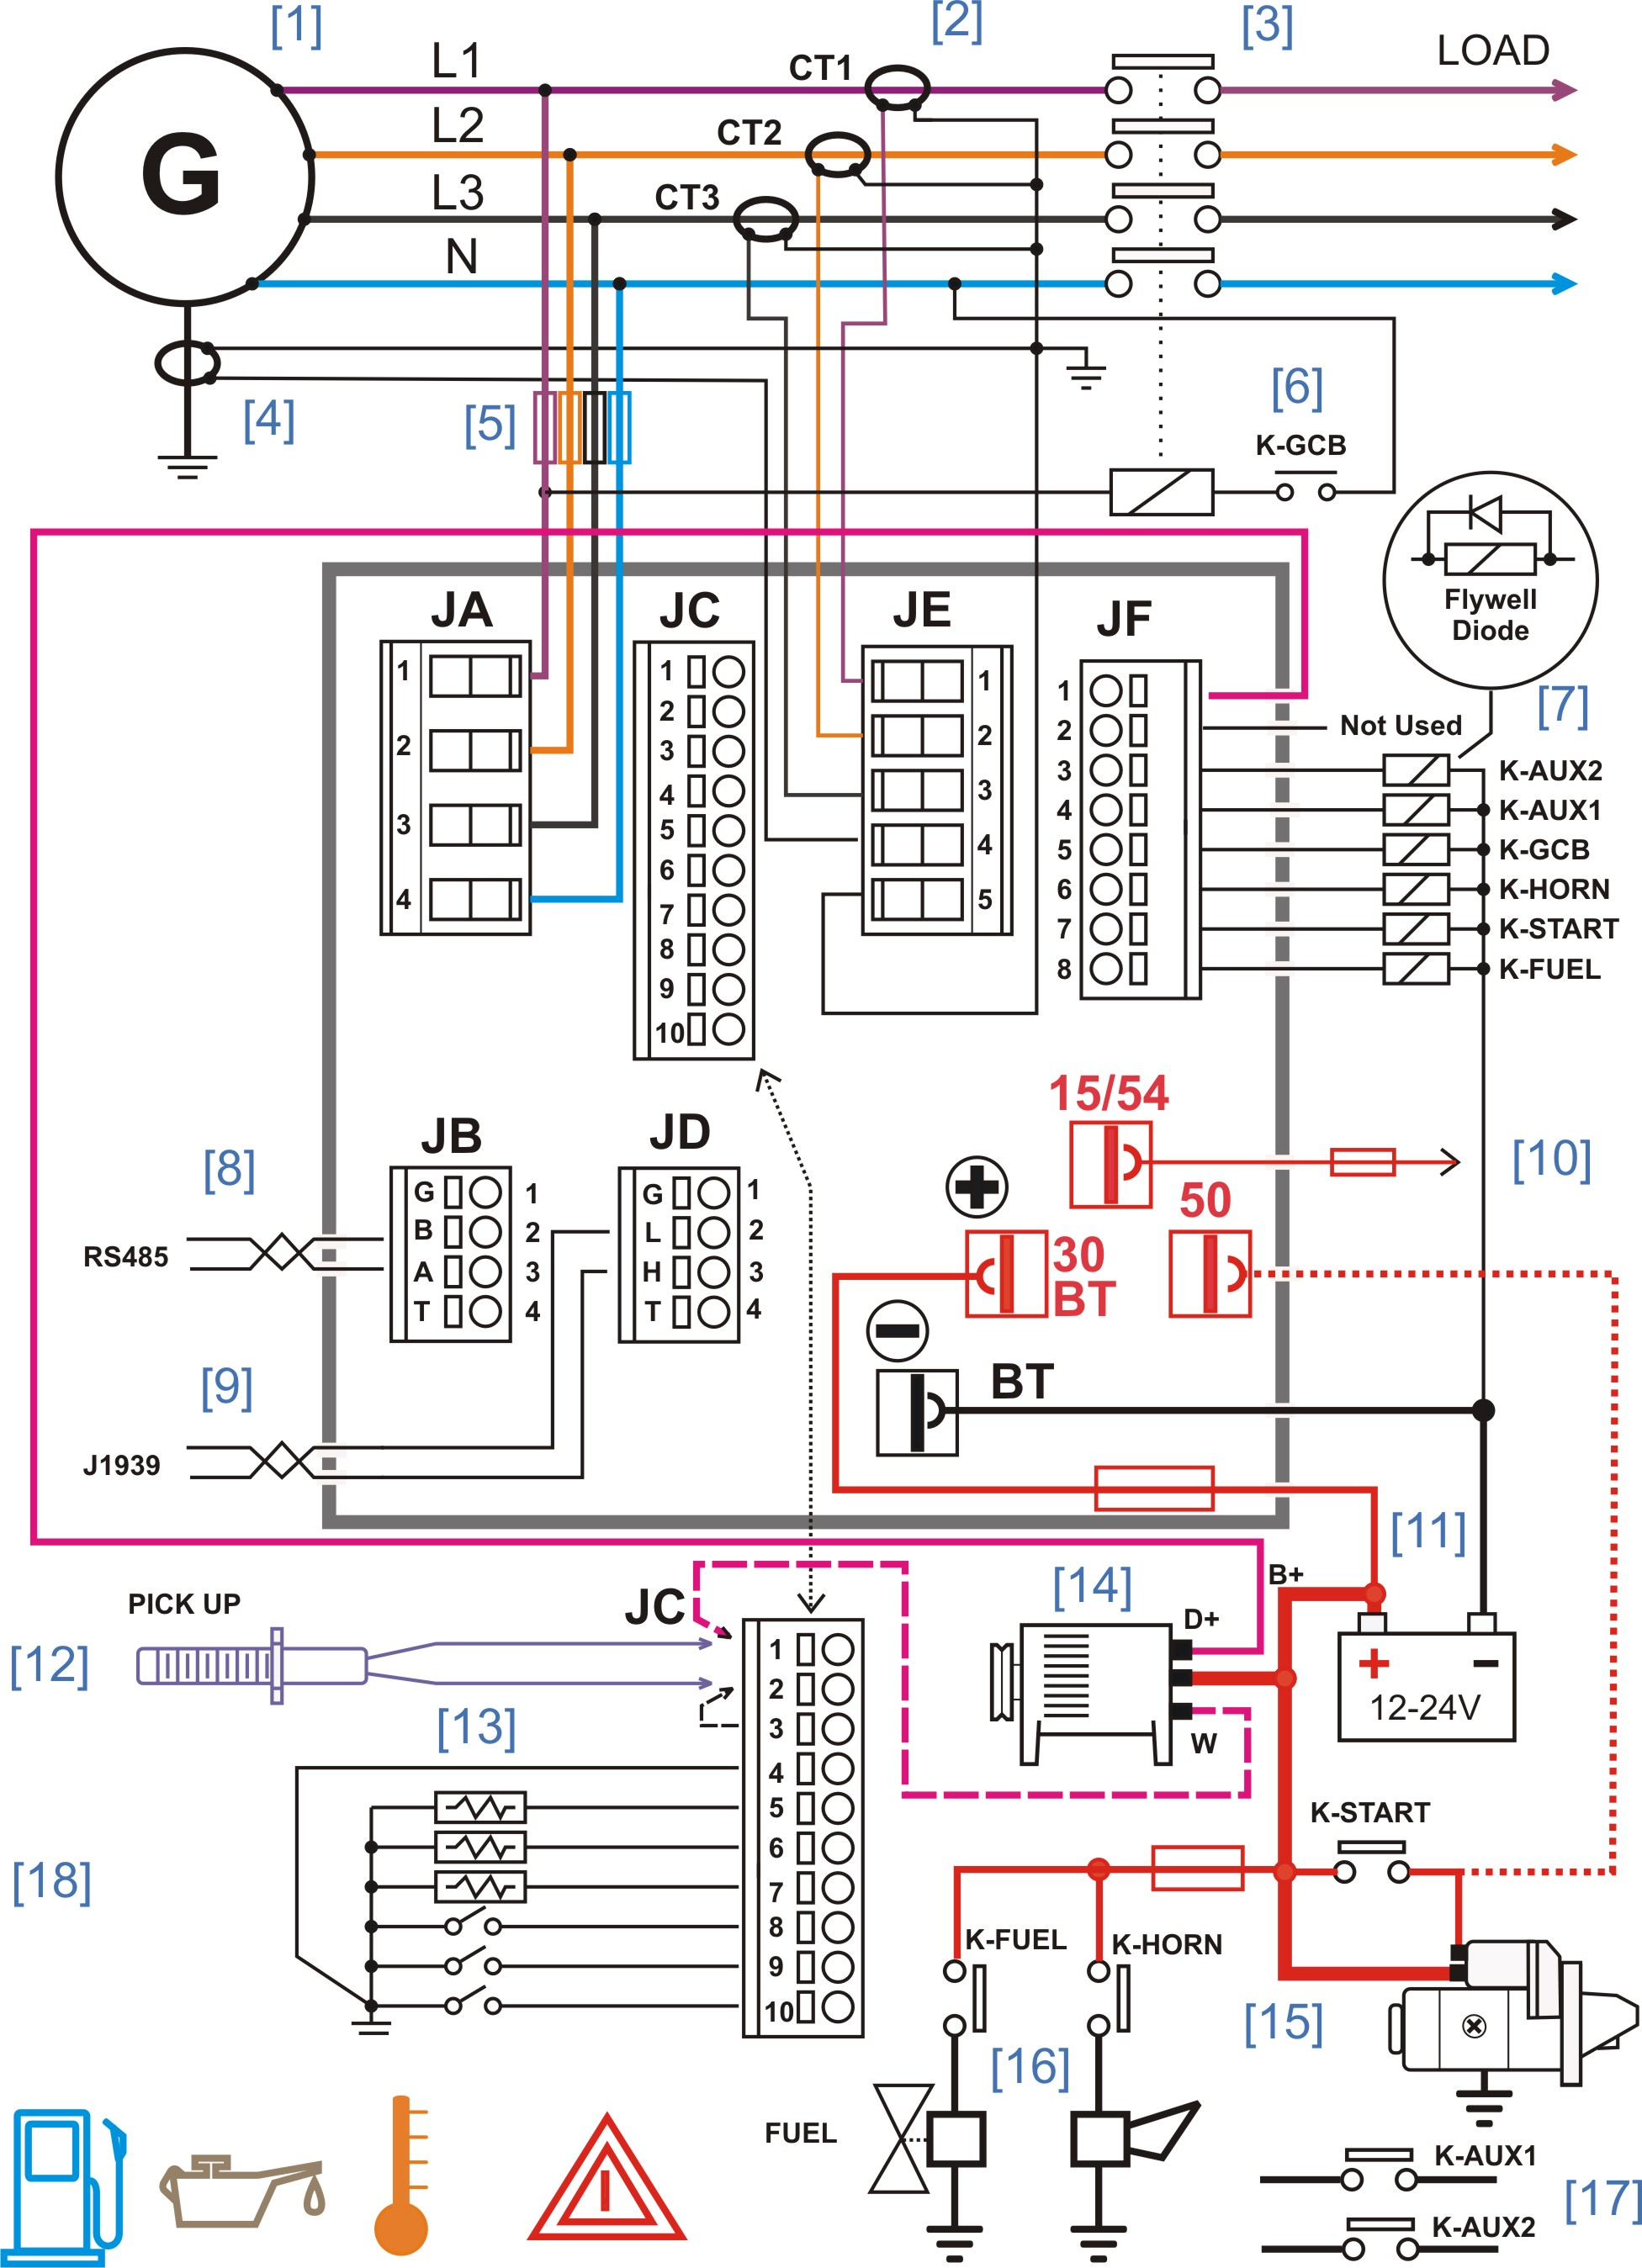 Diesel Generator Control Panel Wiring Diagram diesel generator control panel wiring diagram genset controller  at edmiracle.co